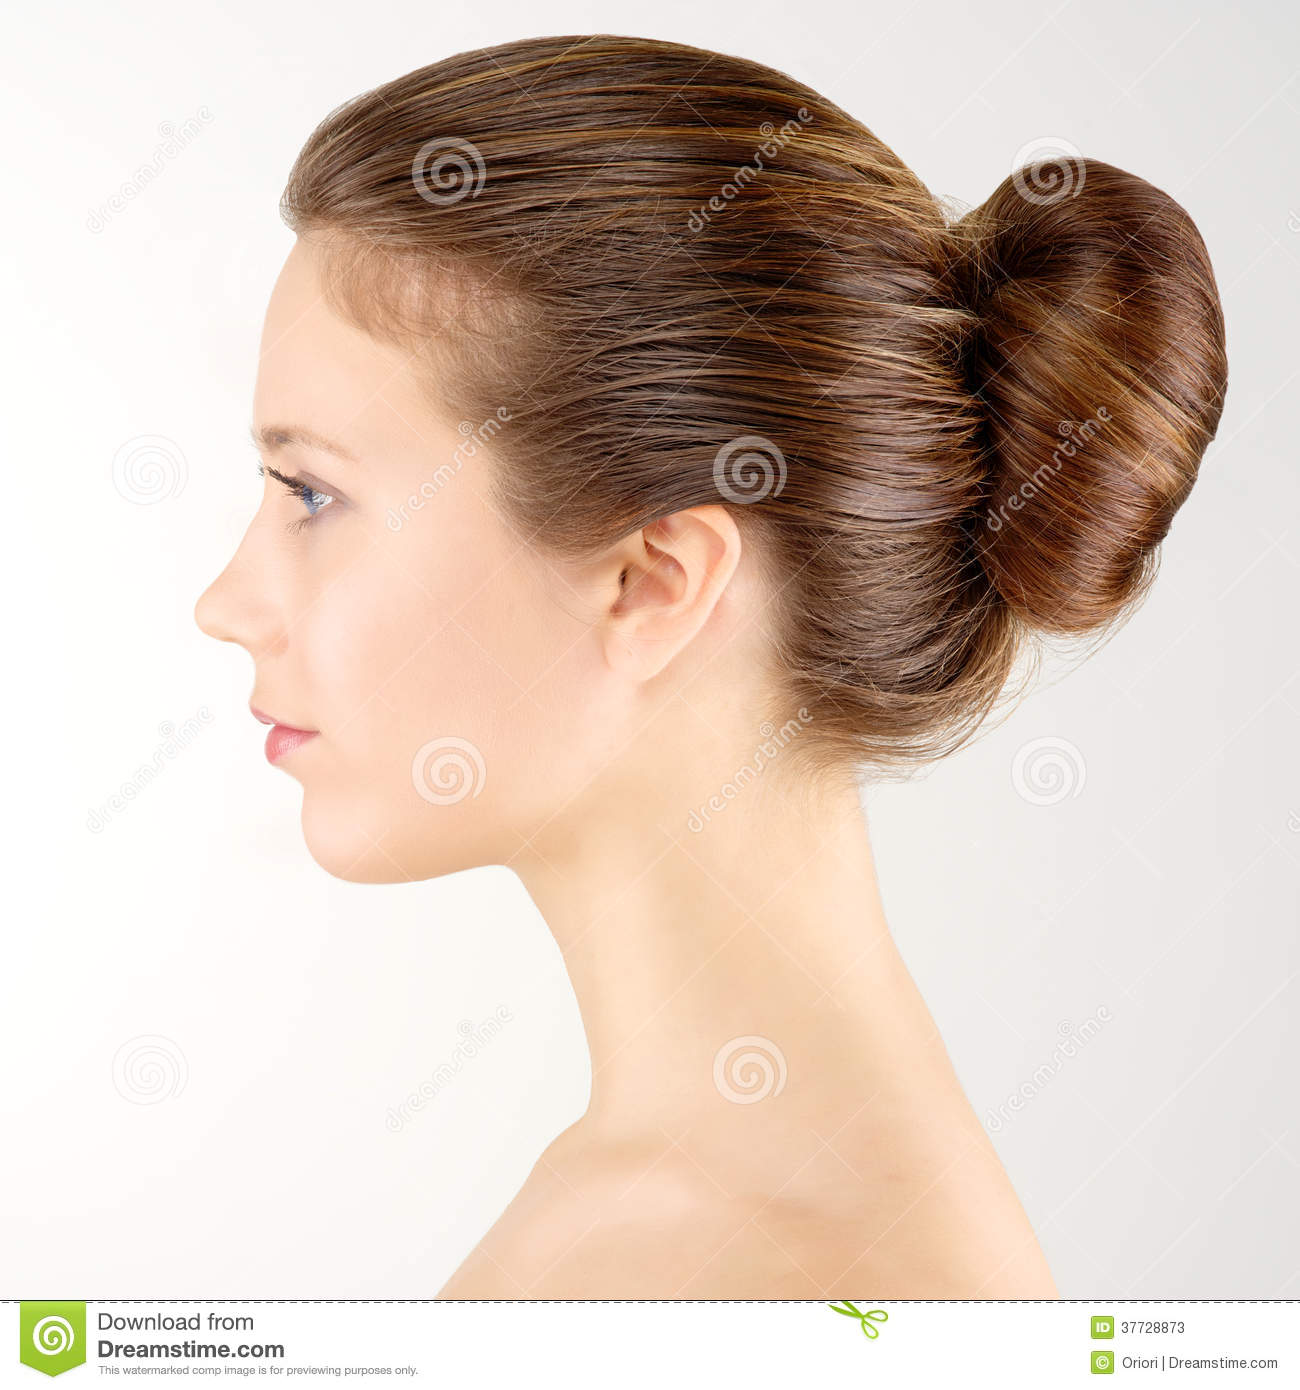 Profile portrait woman stock image. Image of white, girl ...